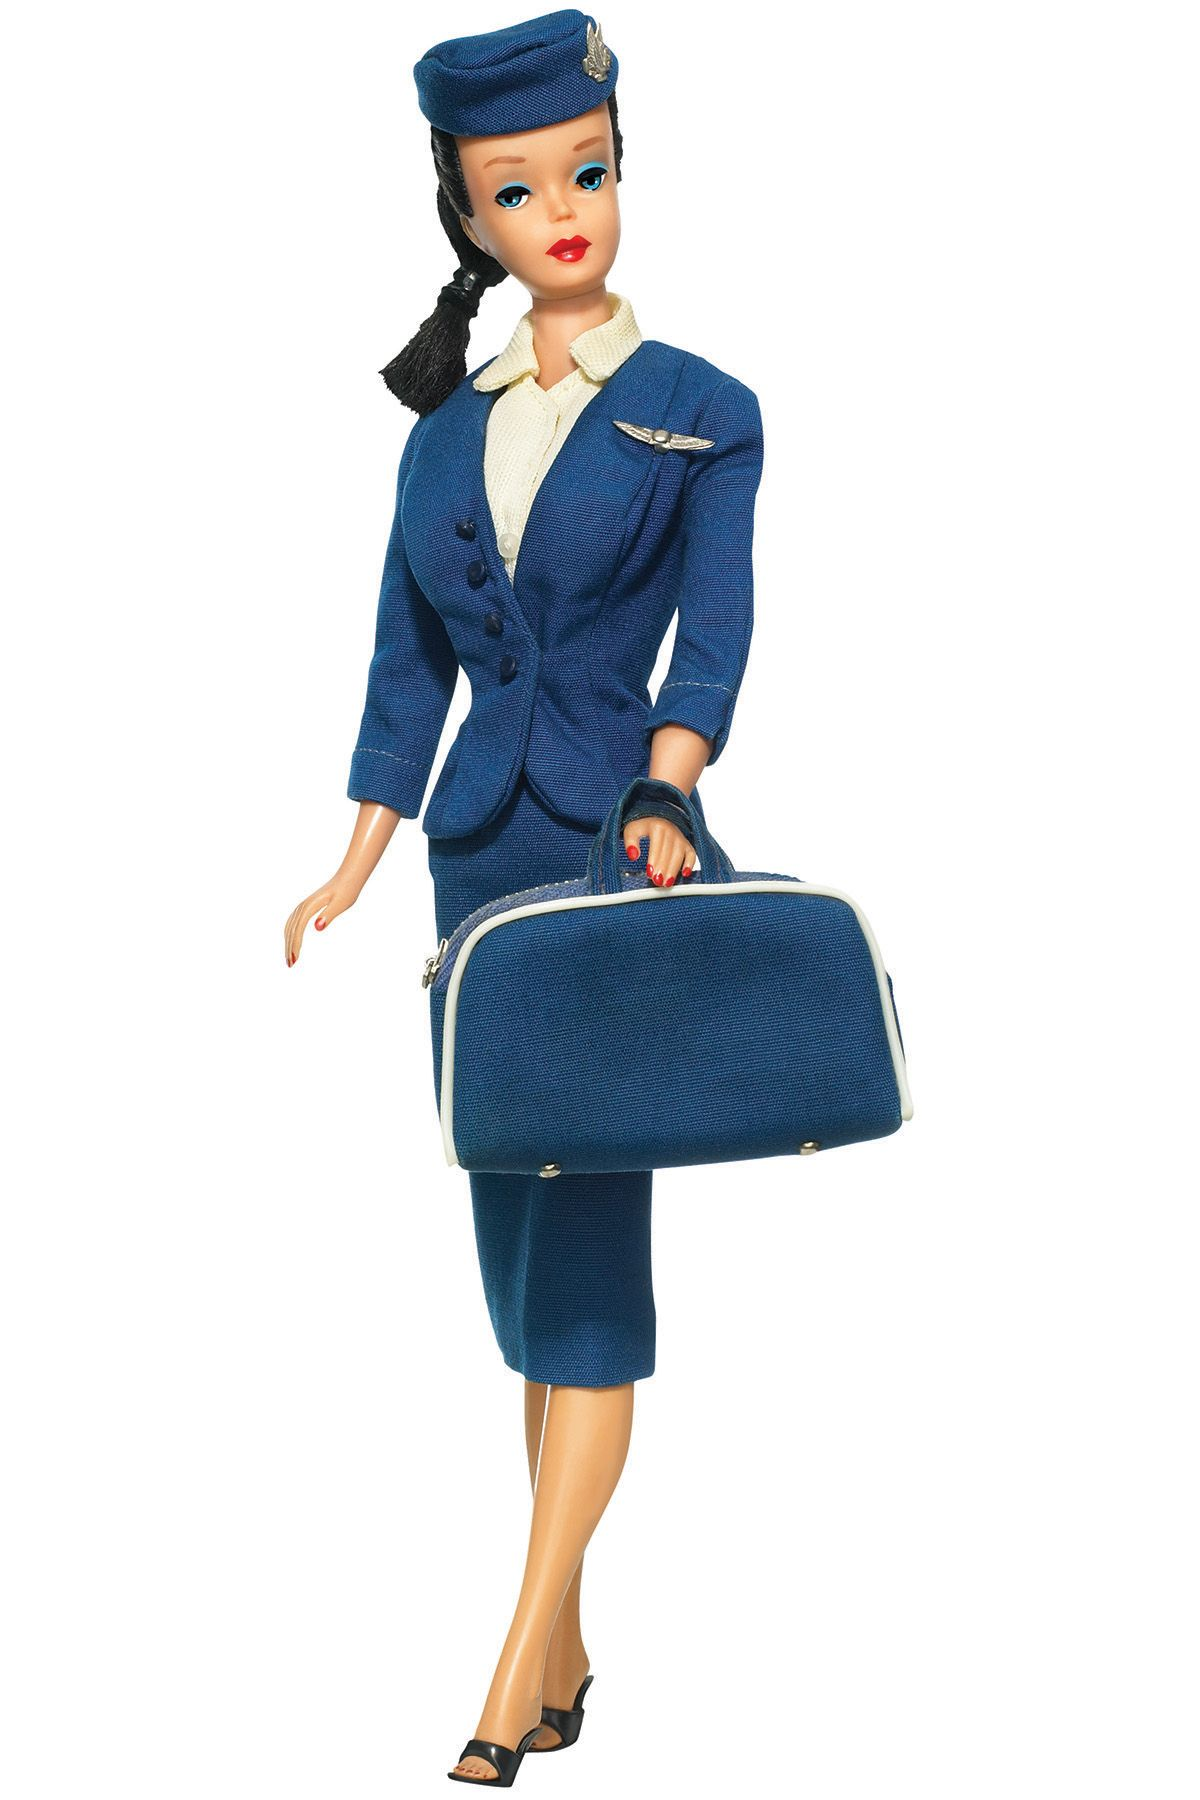 <p>Barbie flight attendant</p>